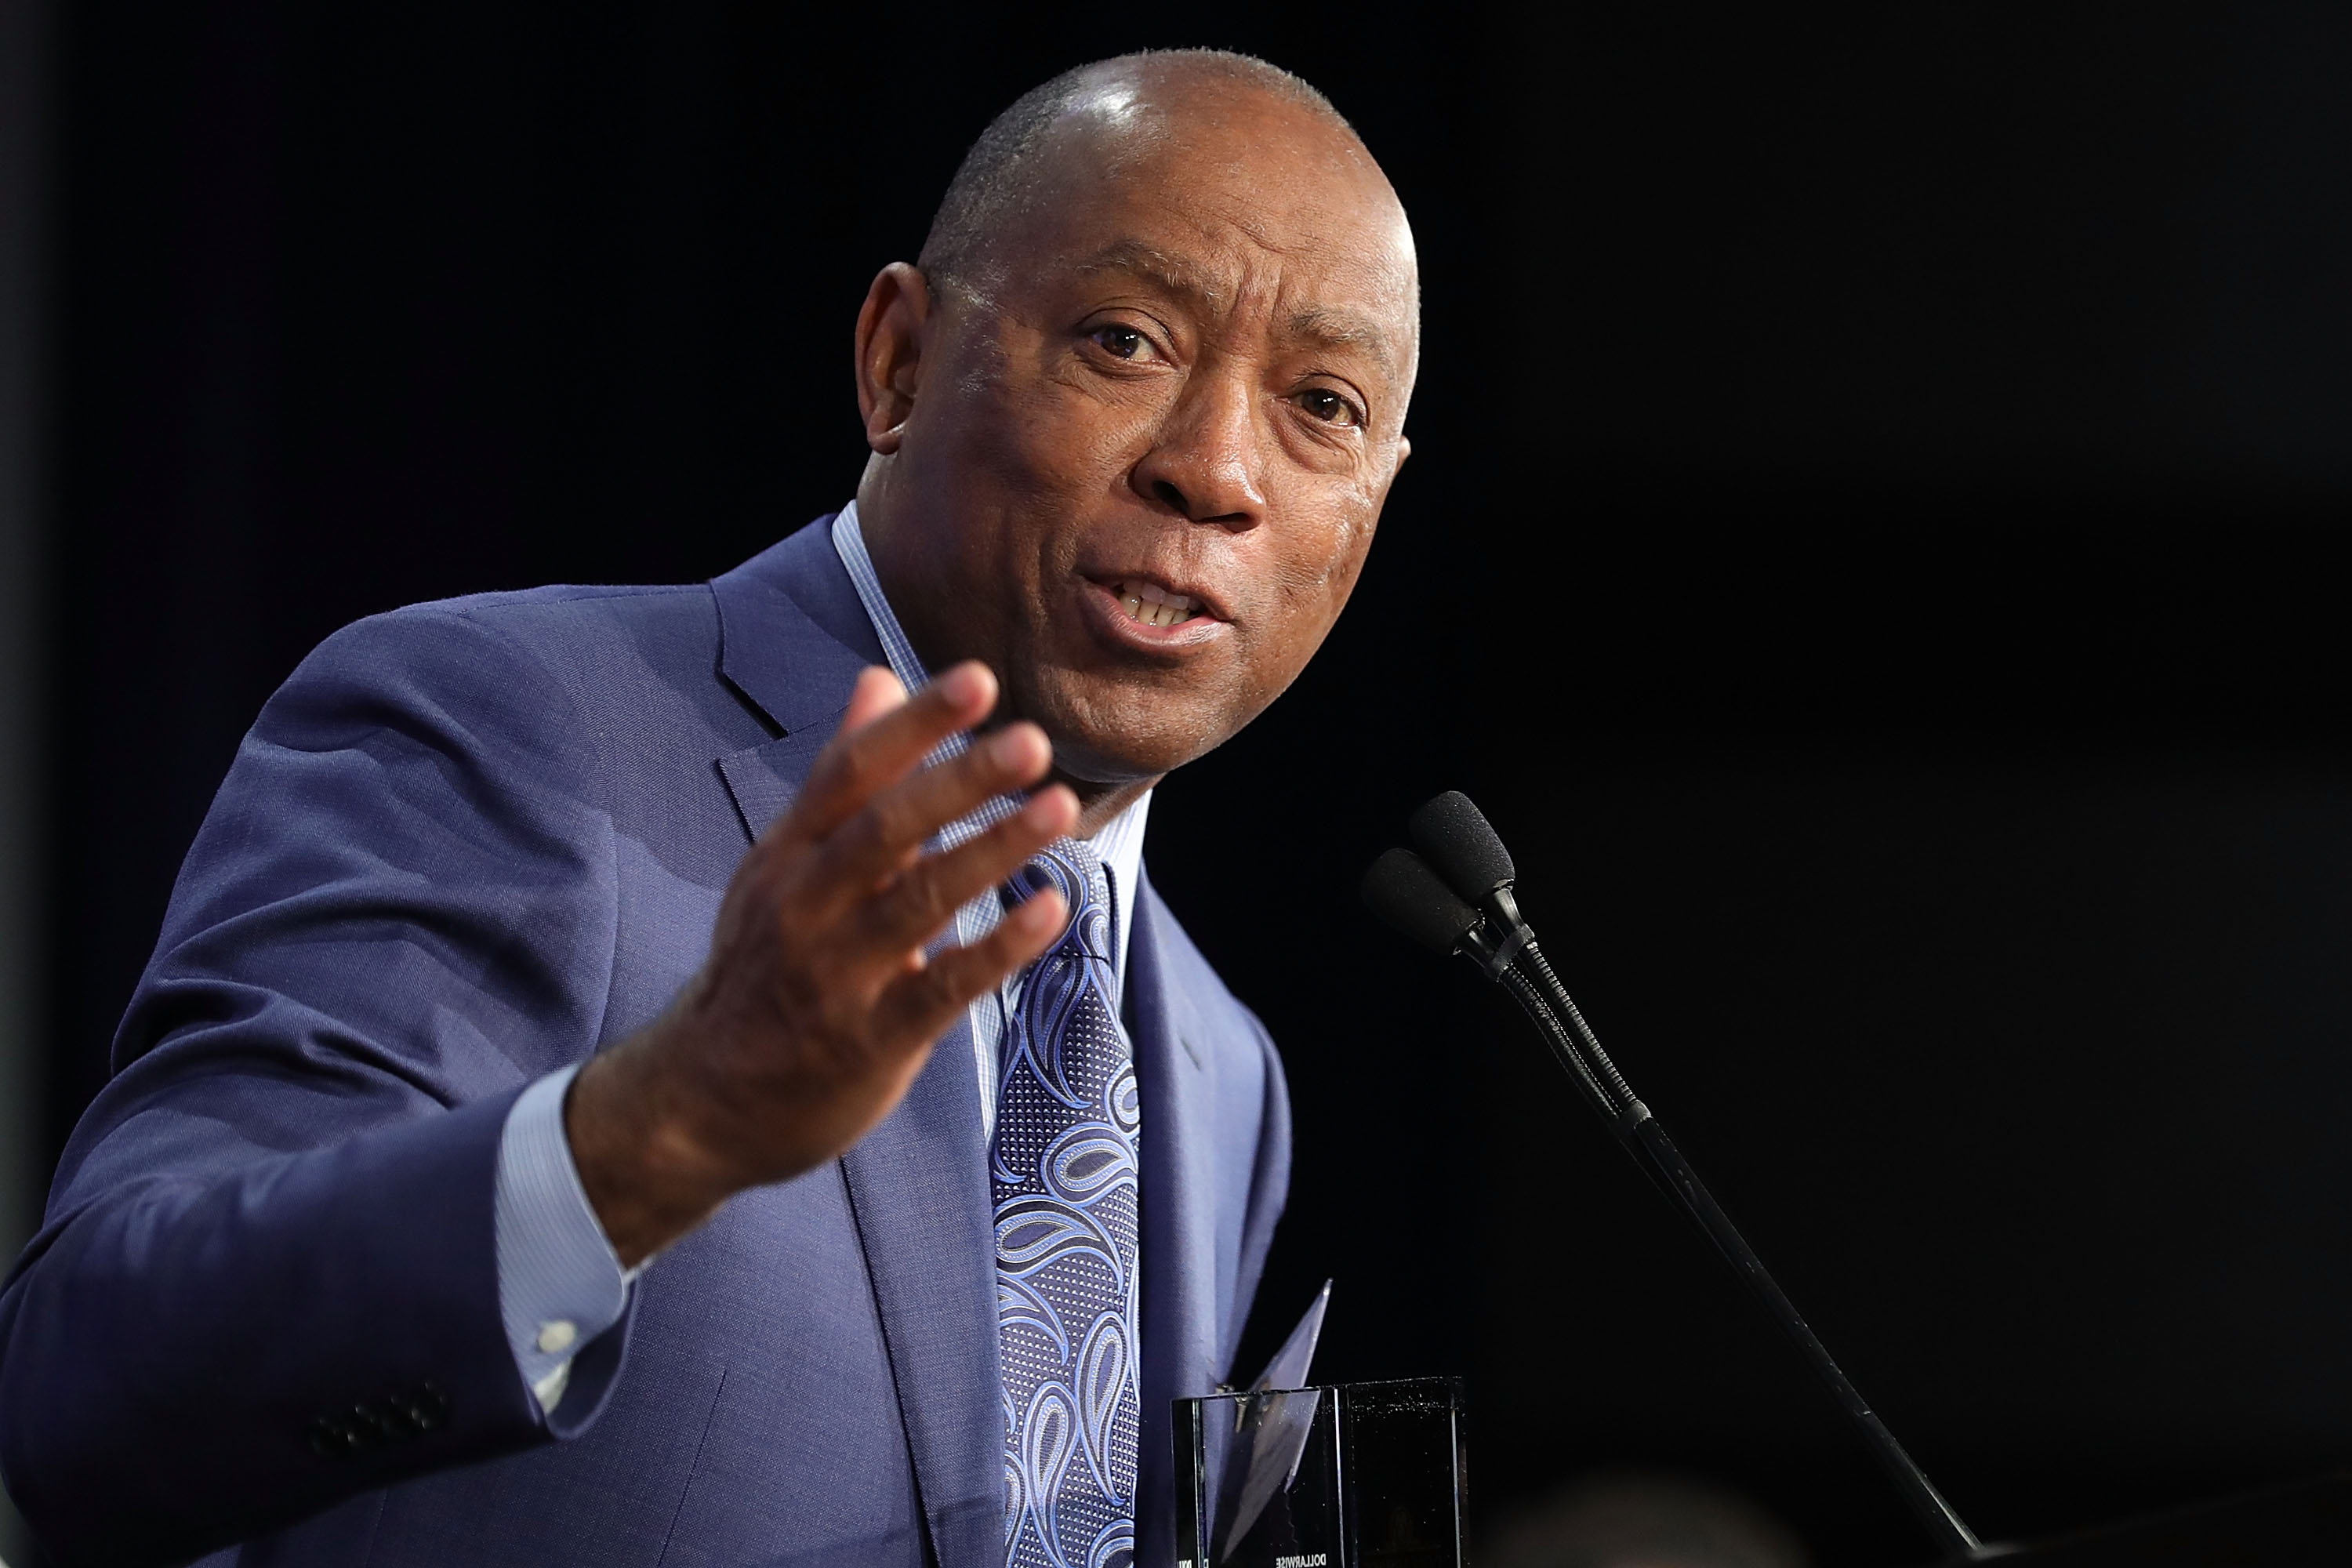 Houston Mayor Sylvester Turner speaks at the U.S. Conference of Mayors in this file photo from 2018.